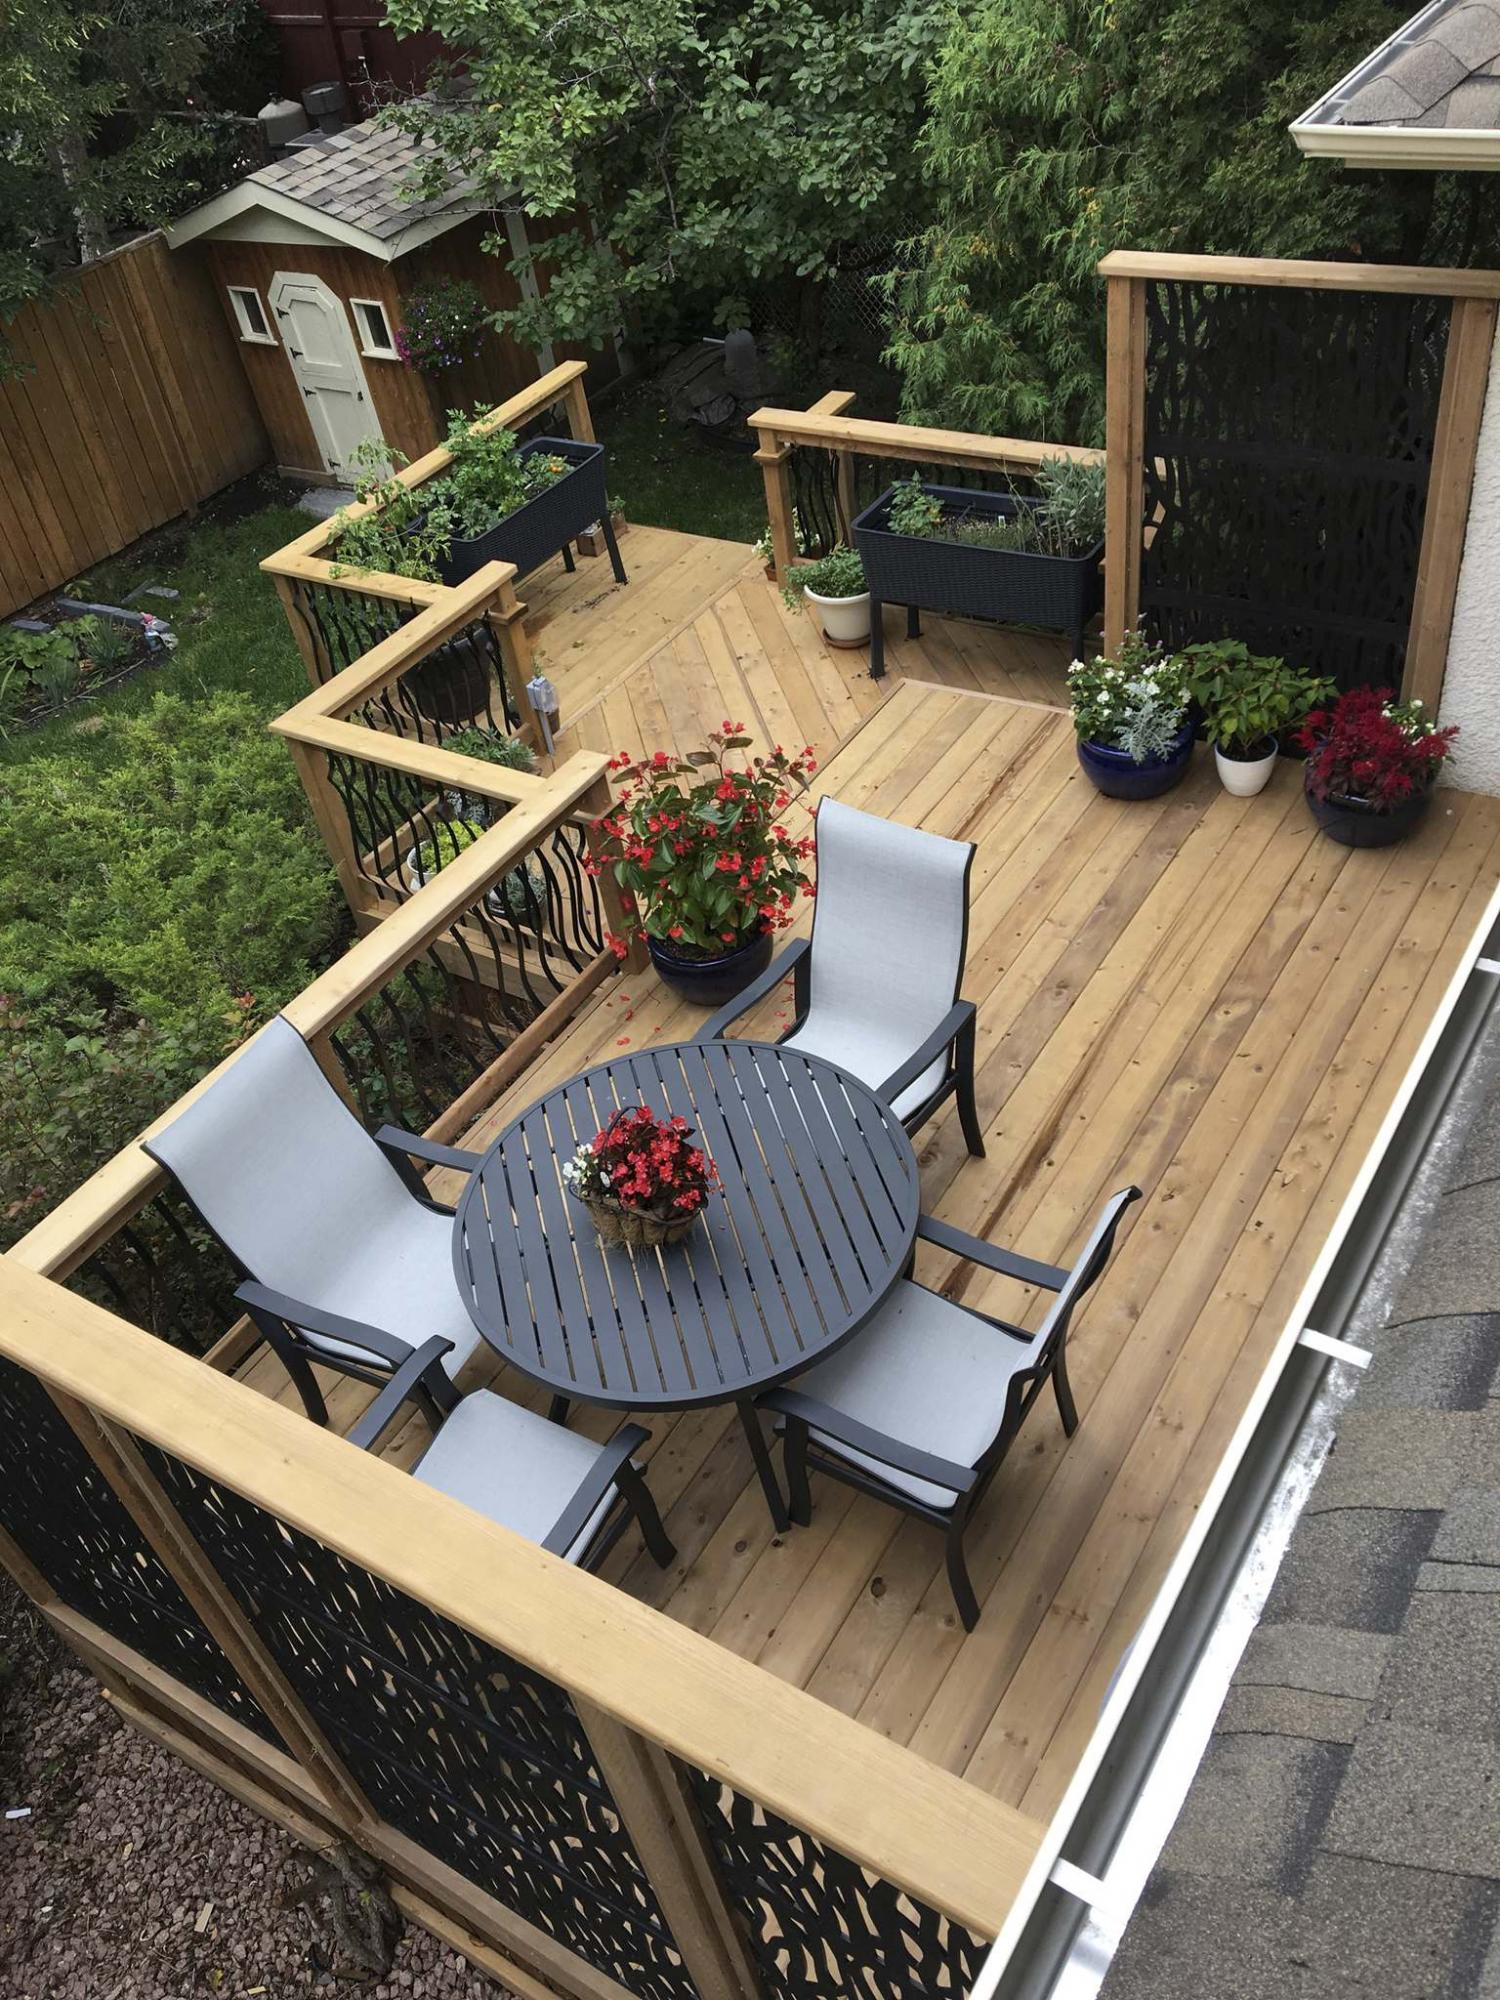 <p>Marc LaBossiere / Winnipeg Free Press</p><p>The three-tiered deck — featuring cascading railings with black metal balusters and two privacy walls with black plastic decorative panels — provides a peaceful backyard sanctuary.</p>